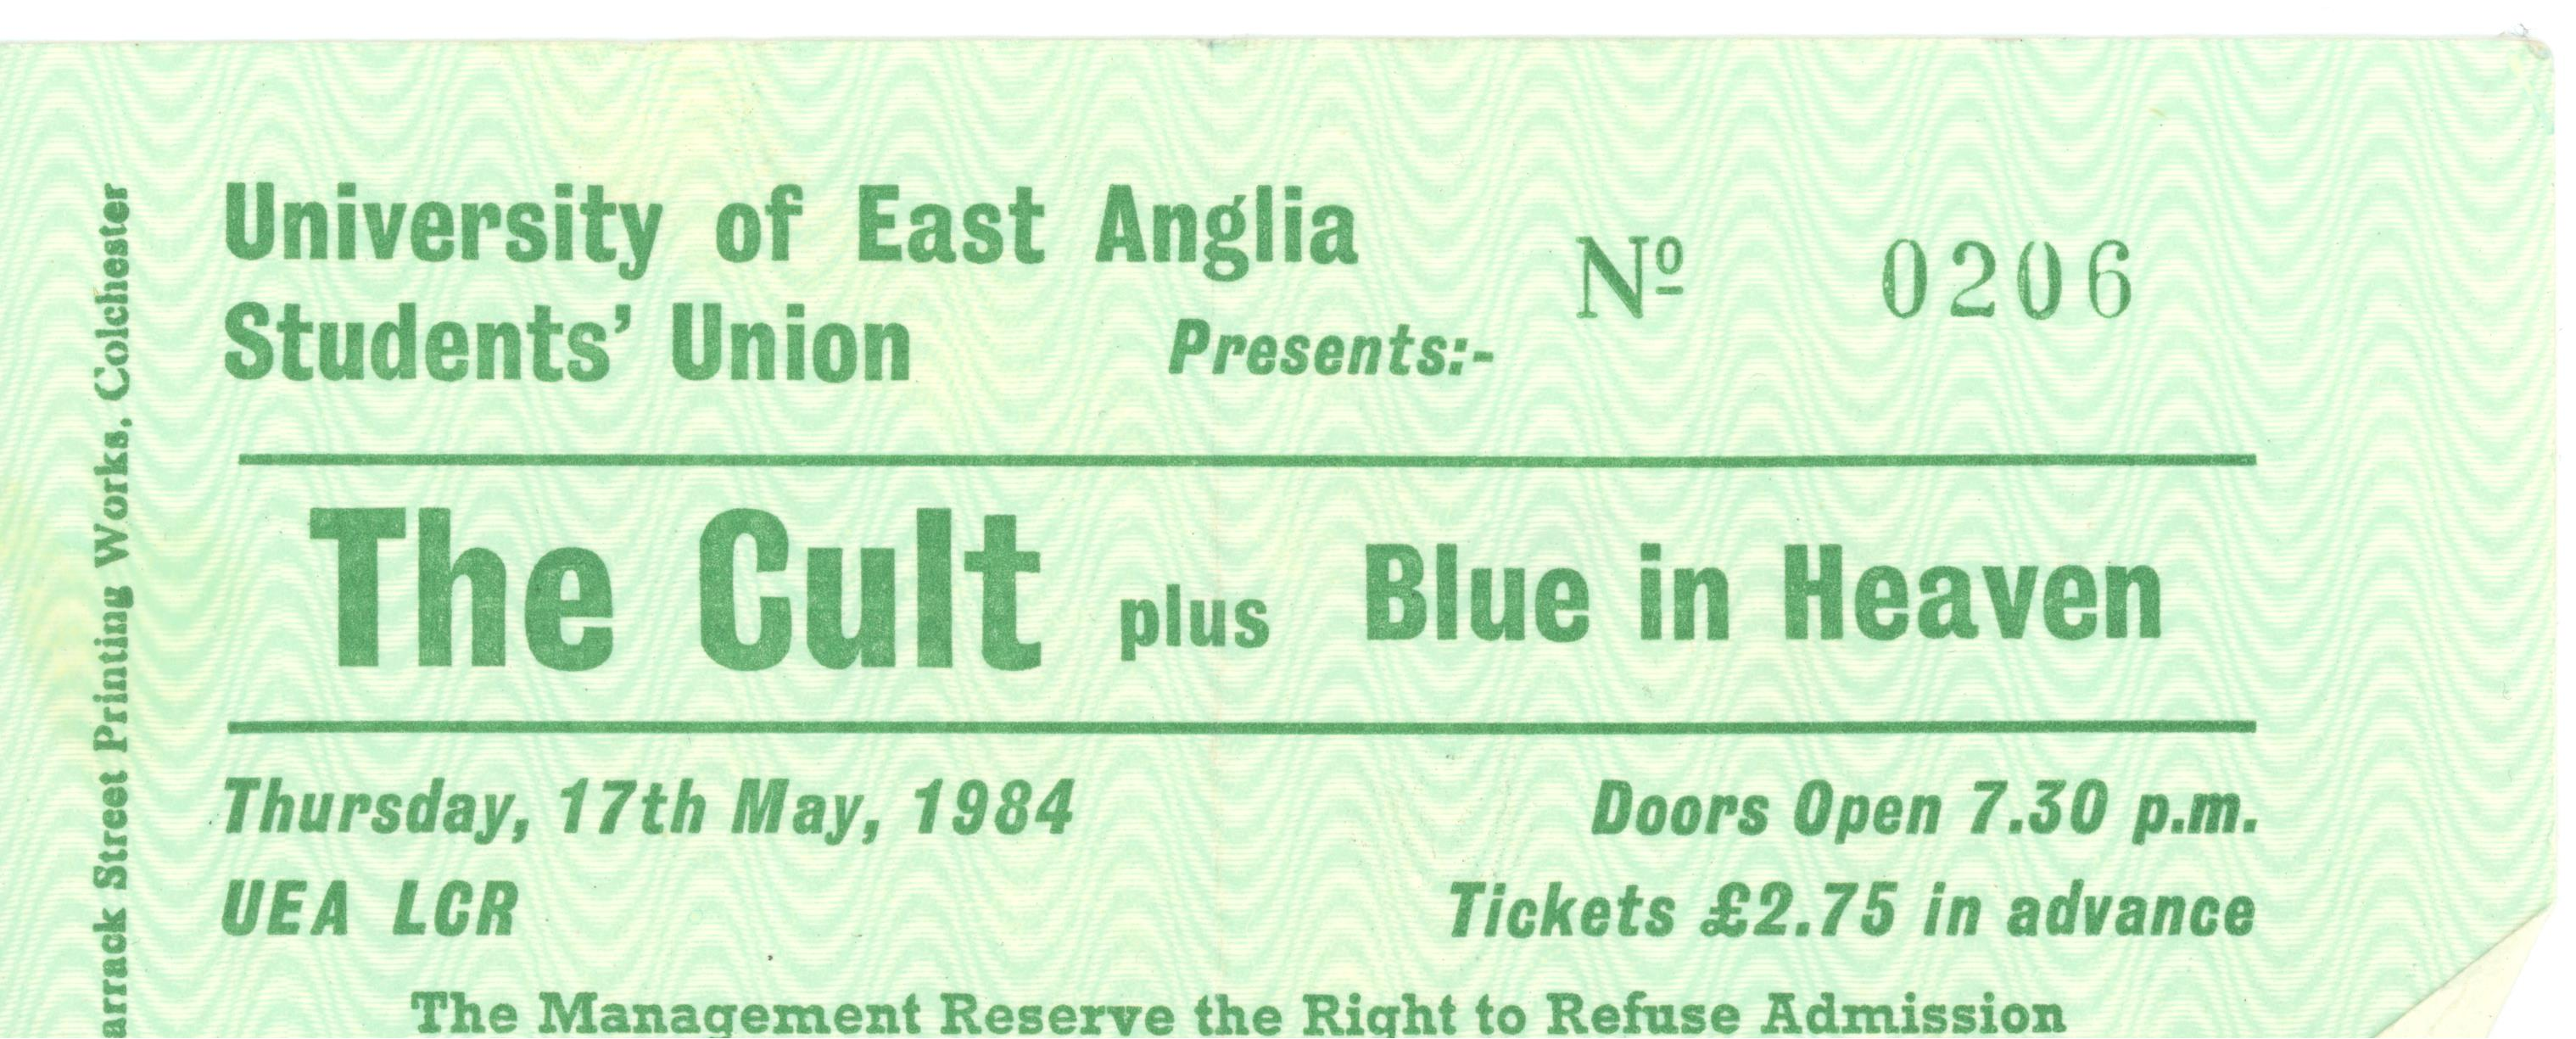 Blue in heaven and the cult 1984